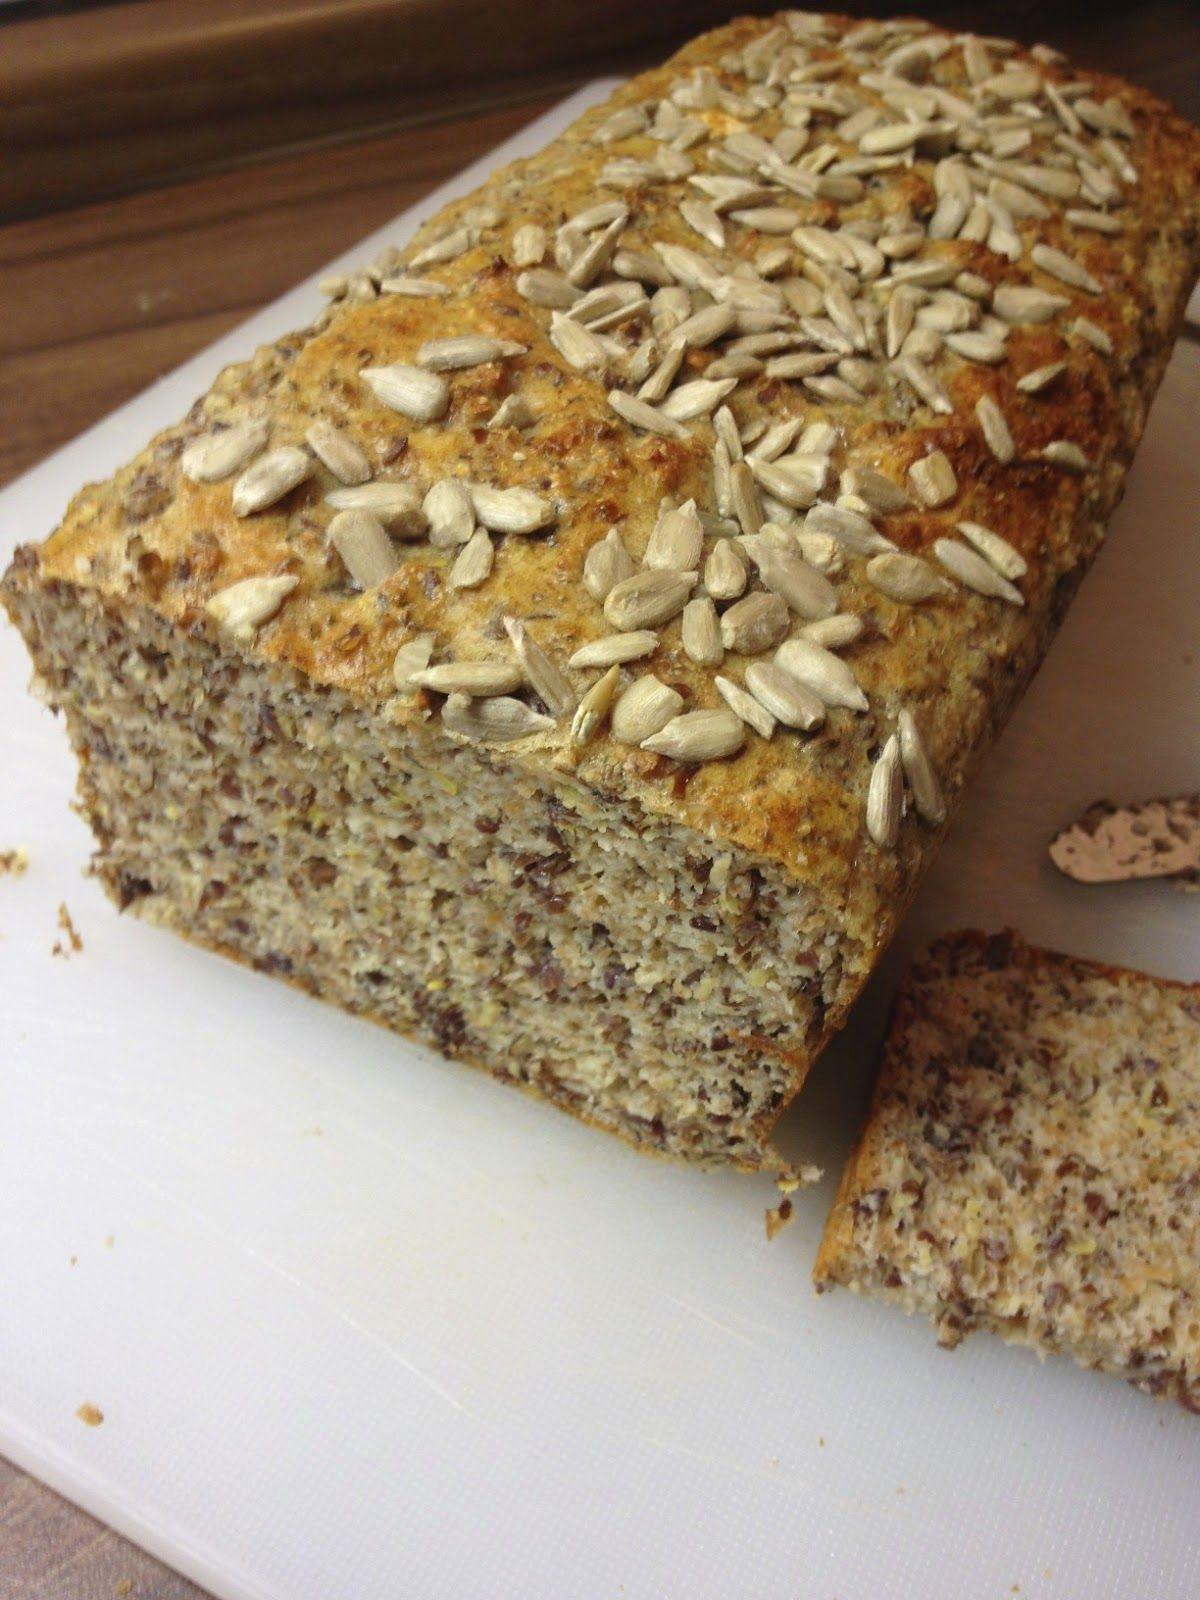 beautybrownii: Low Carb Brot - Anabole Diät  Anabole diät, Low